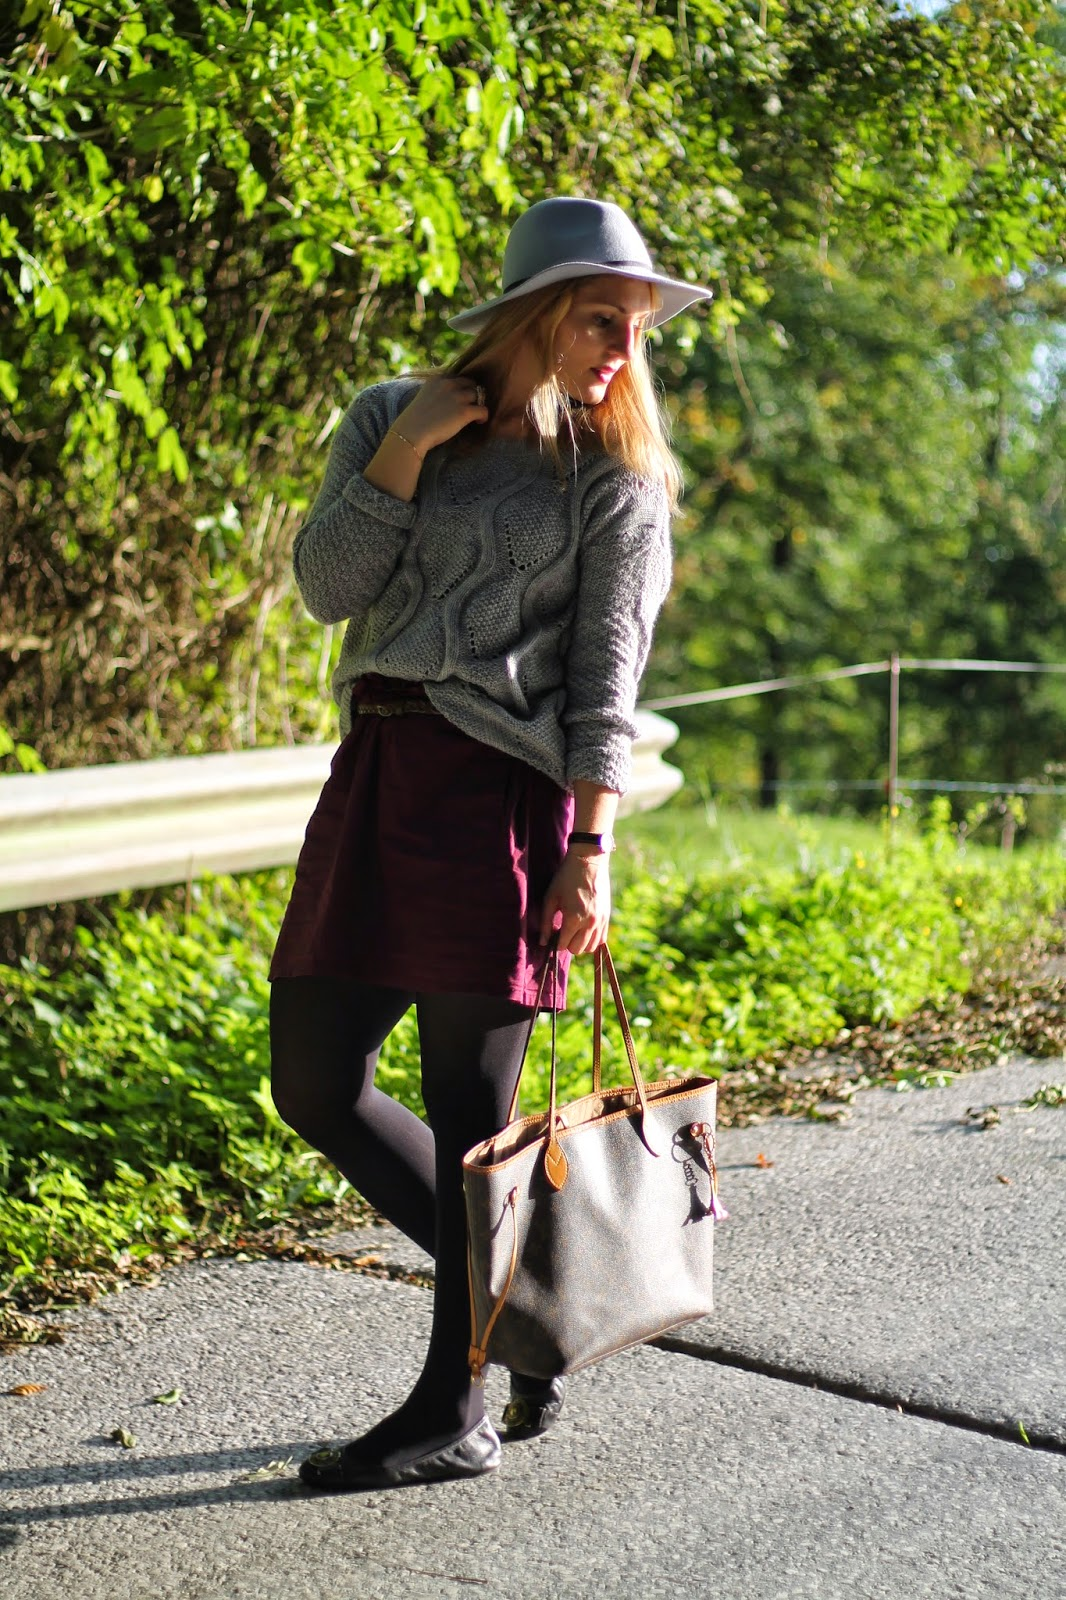 Fashionblogger Austria / Österreich / Deutsch / German / Kärnten / Carinthia / Klagenfurt / Köttmannsdorf / Spring Look / Classy / Edgy / Autumn / Autumn Style 2014 / Autumn Look / Fashionista Look / Bordeaux / Hot to style / Asos Hat Grey / Grey Sweater / Bordeaux Skirt H&M / Daniel Wellington watch / Louis Vuitton neverfull MC MM / Burberry Flats Back /